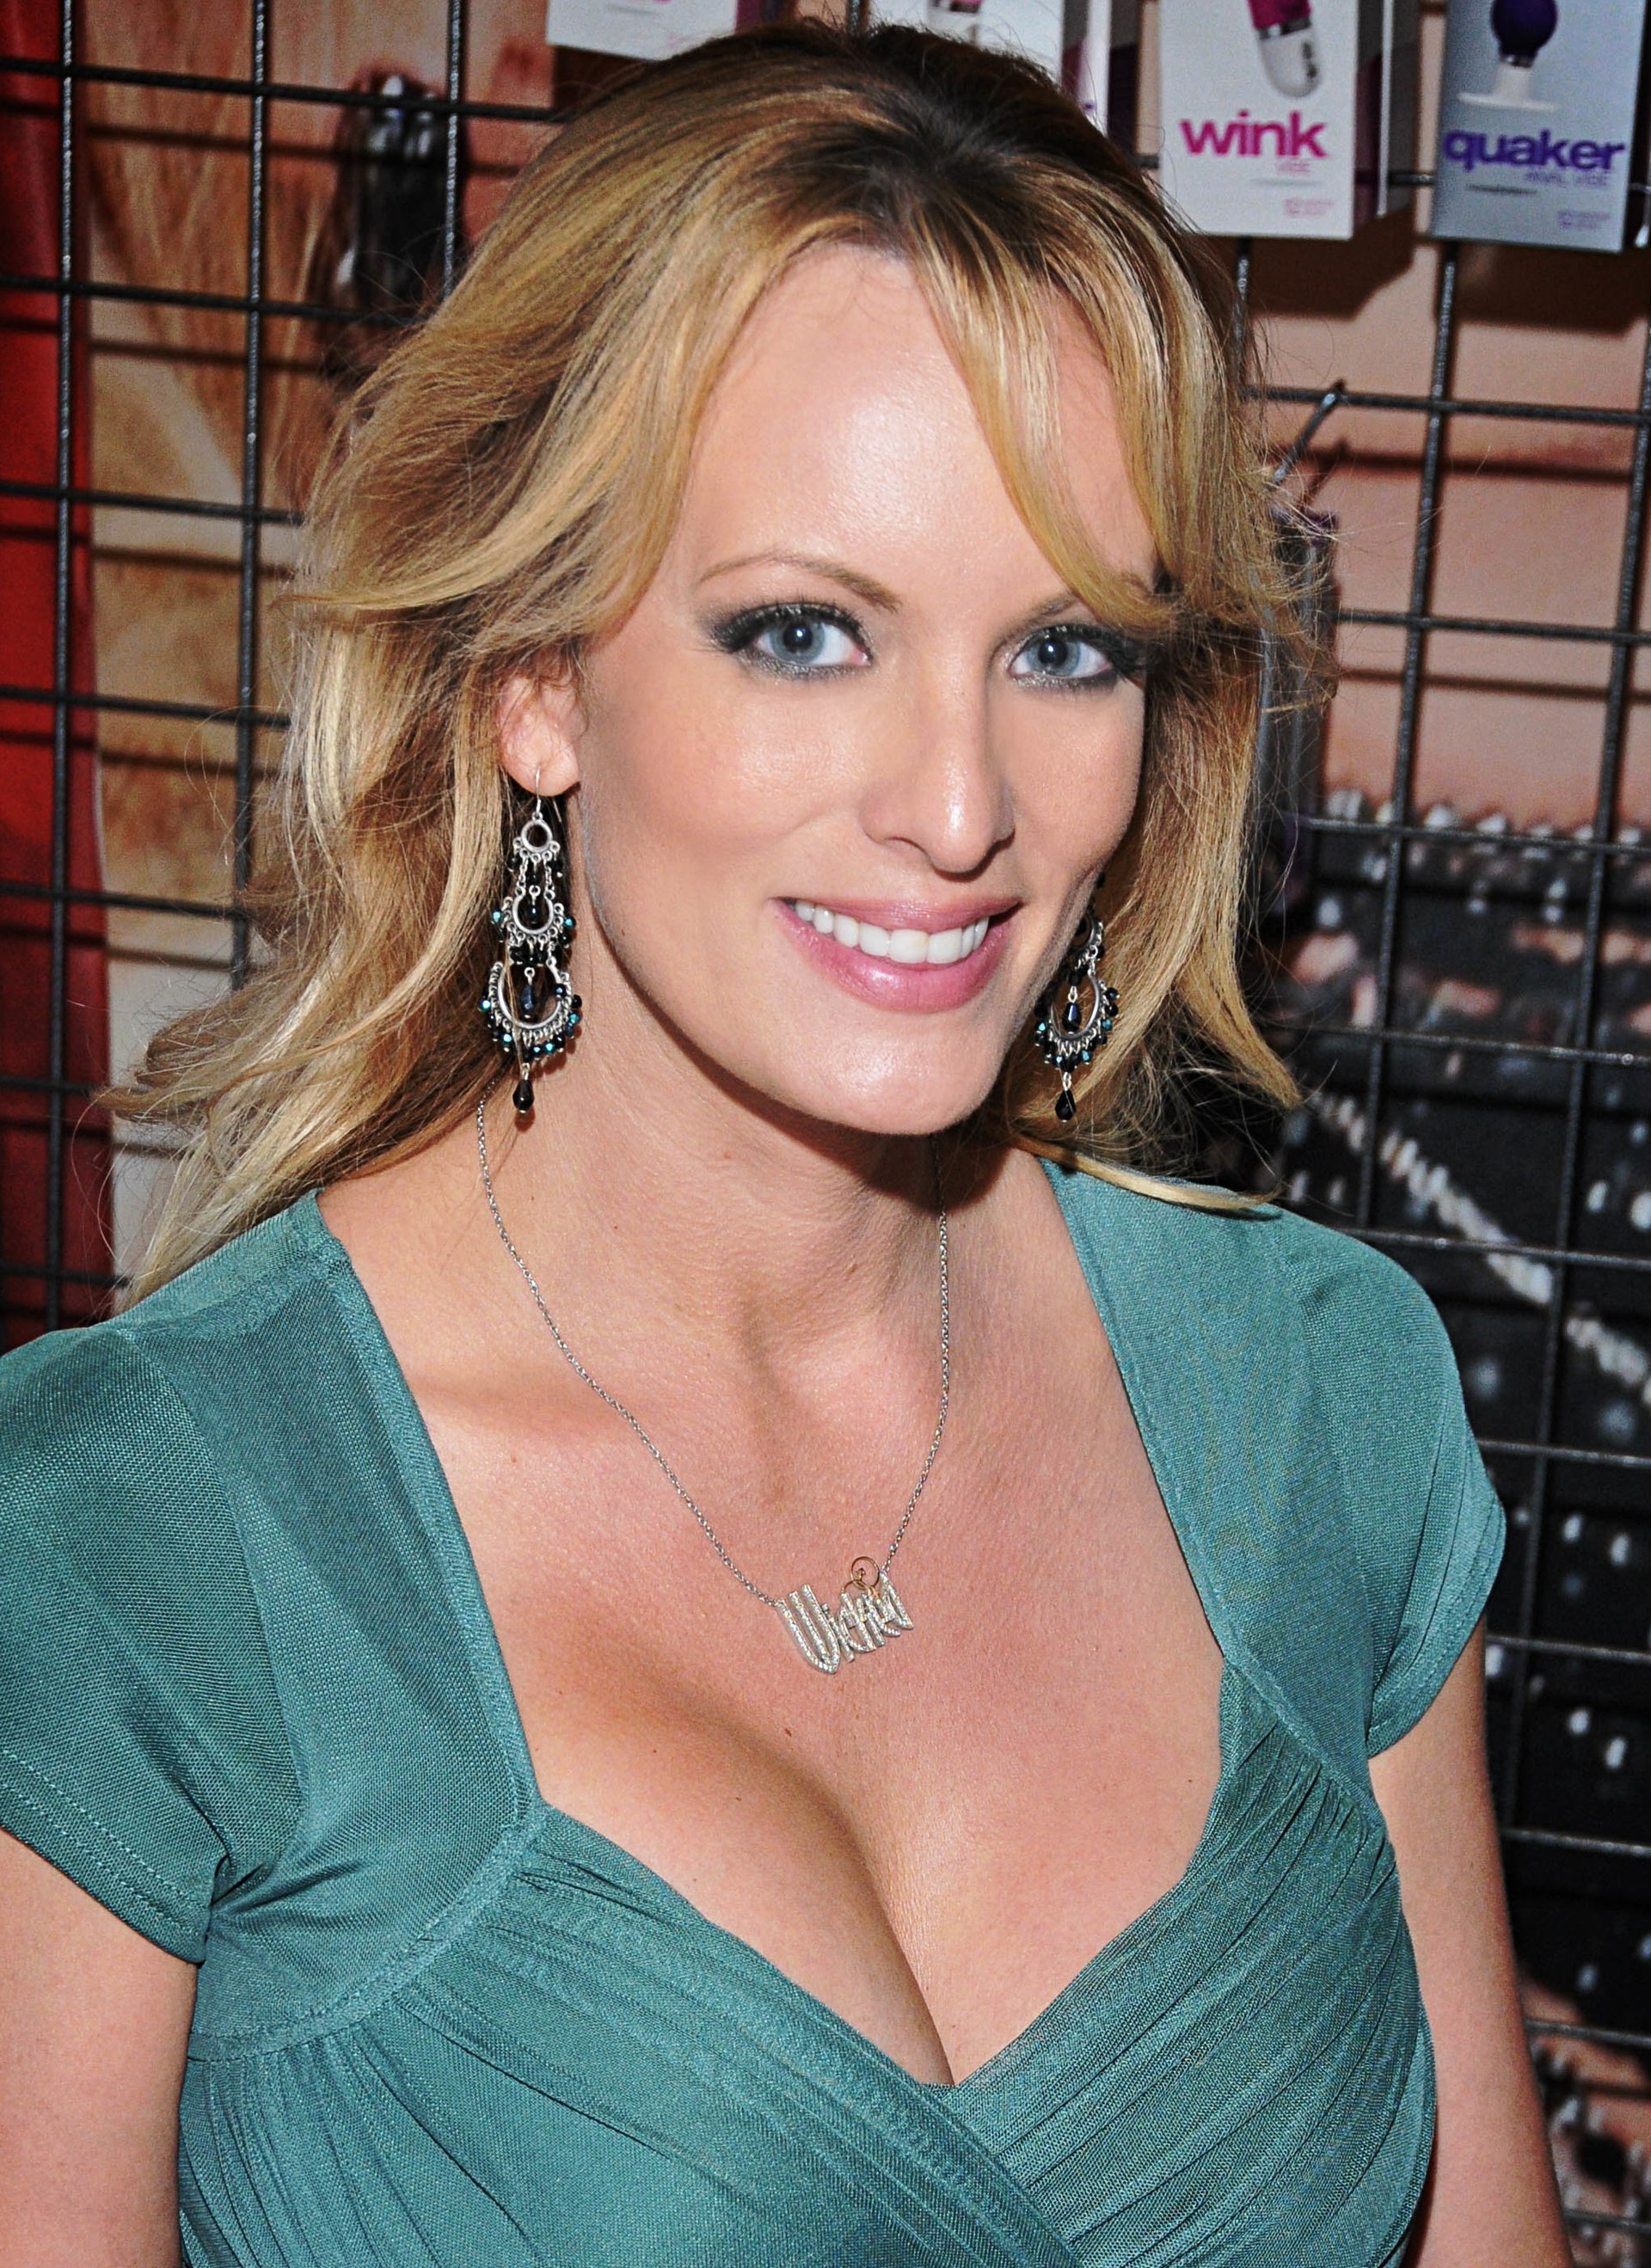 Sex Video Of Stormy Daniels 91